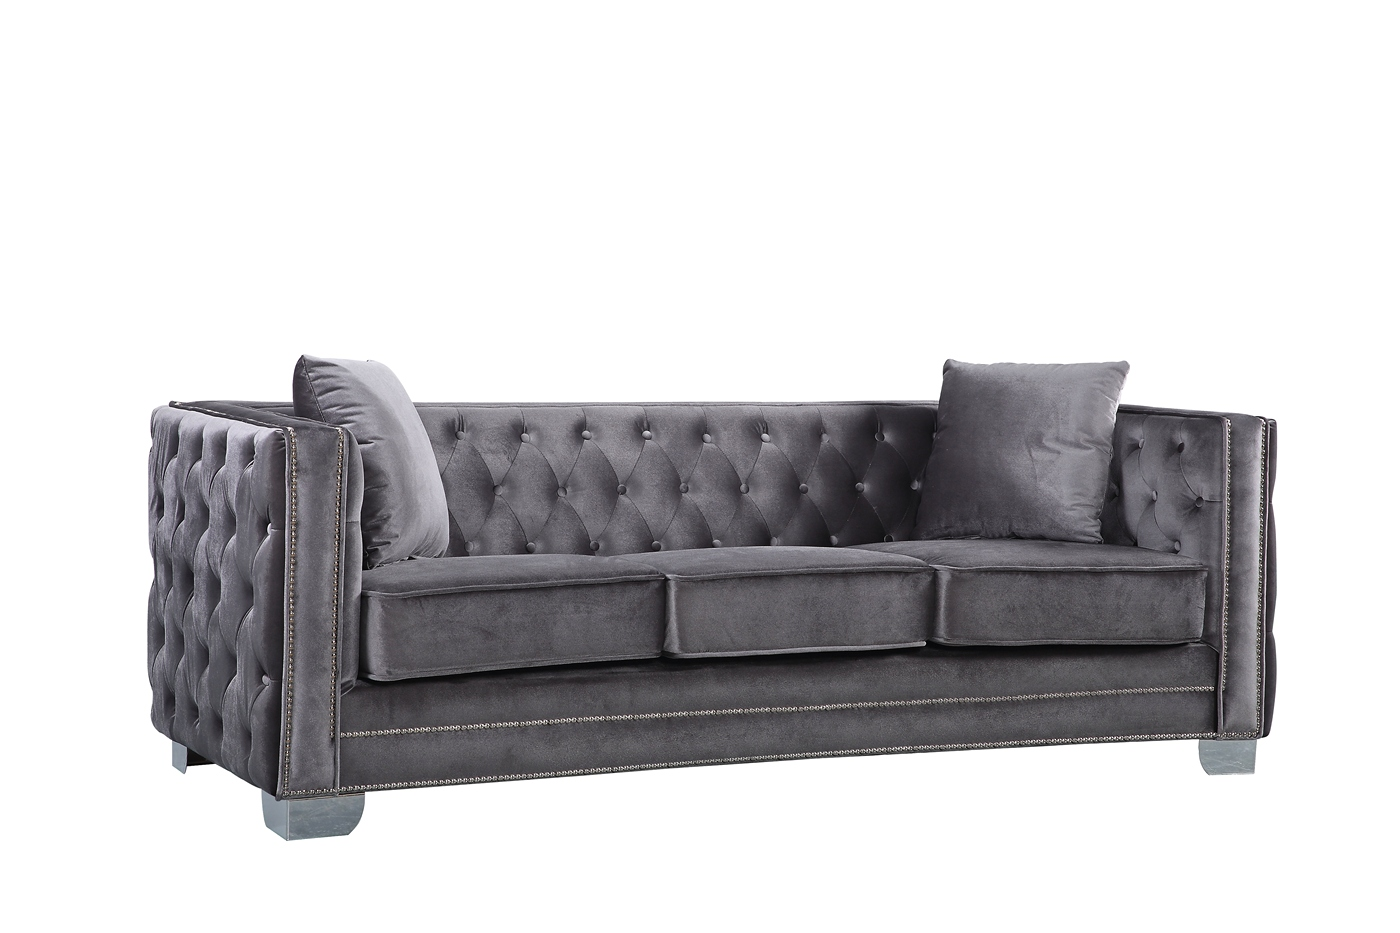 grey sofa with silver nailheads chateau d ax leather gianni modern button tufted velvet nailhead